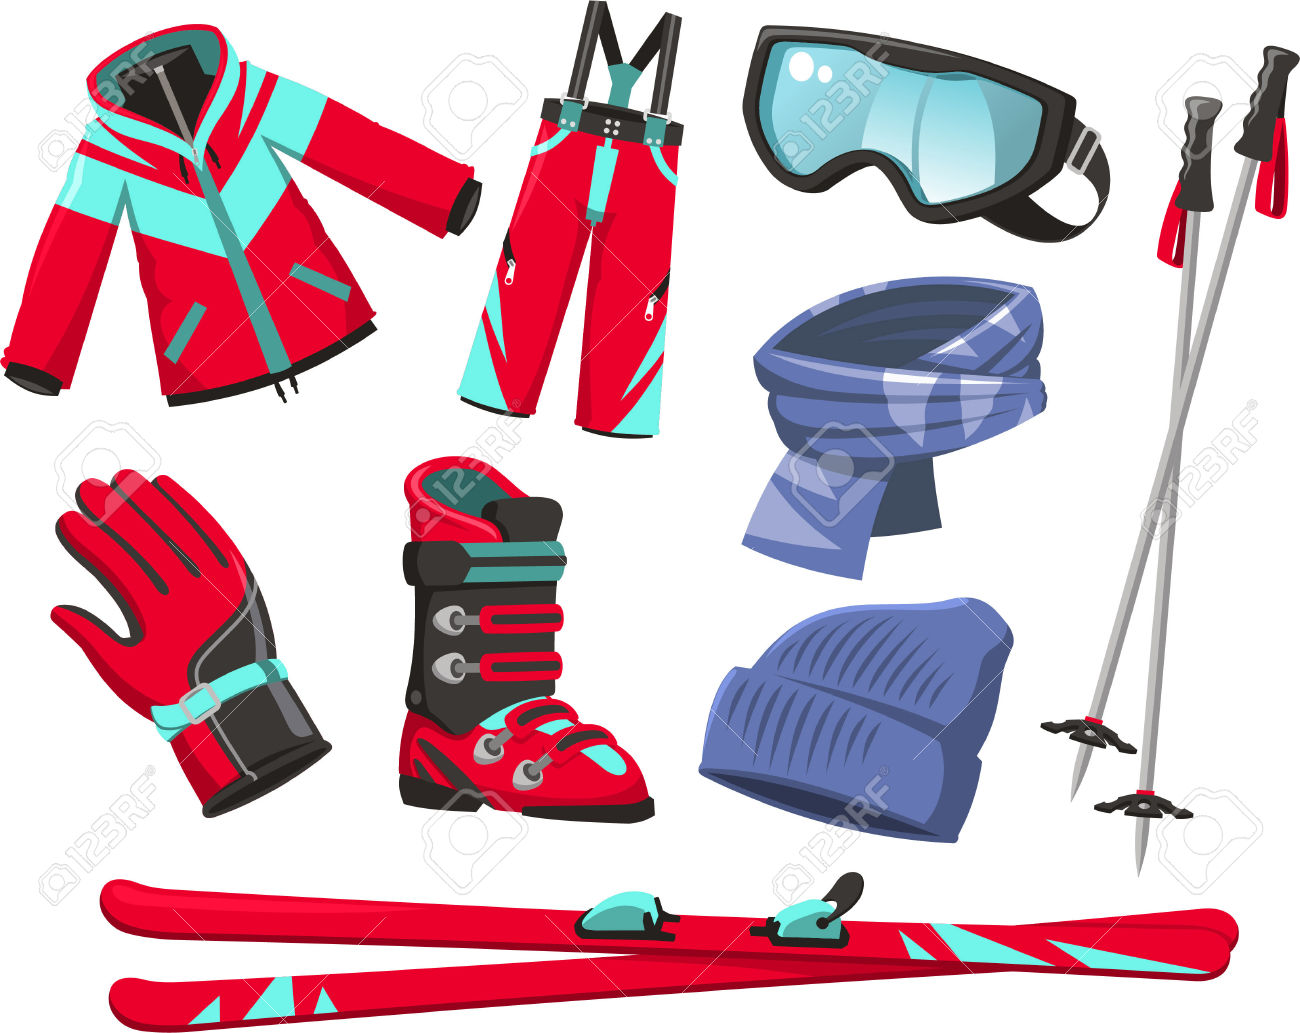 Ski Tools And Equipment Cartoon Icons Royalty Free Cliparts.